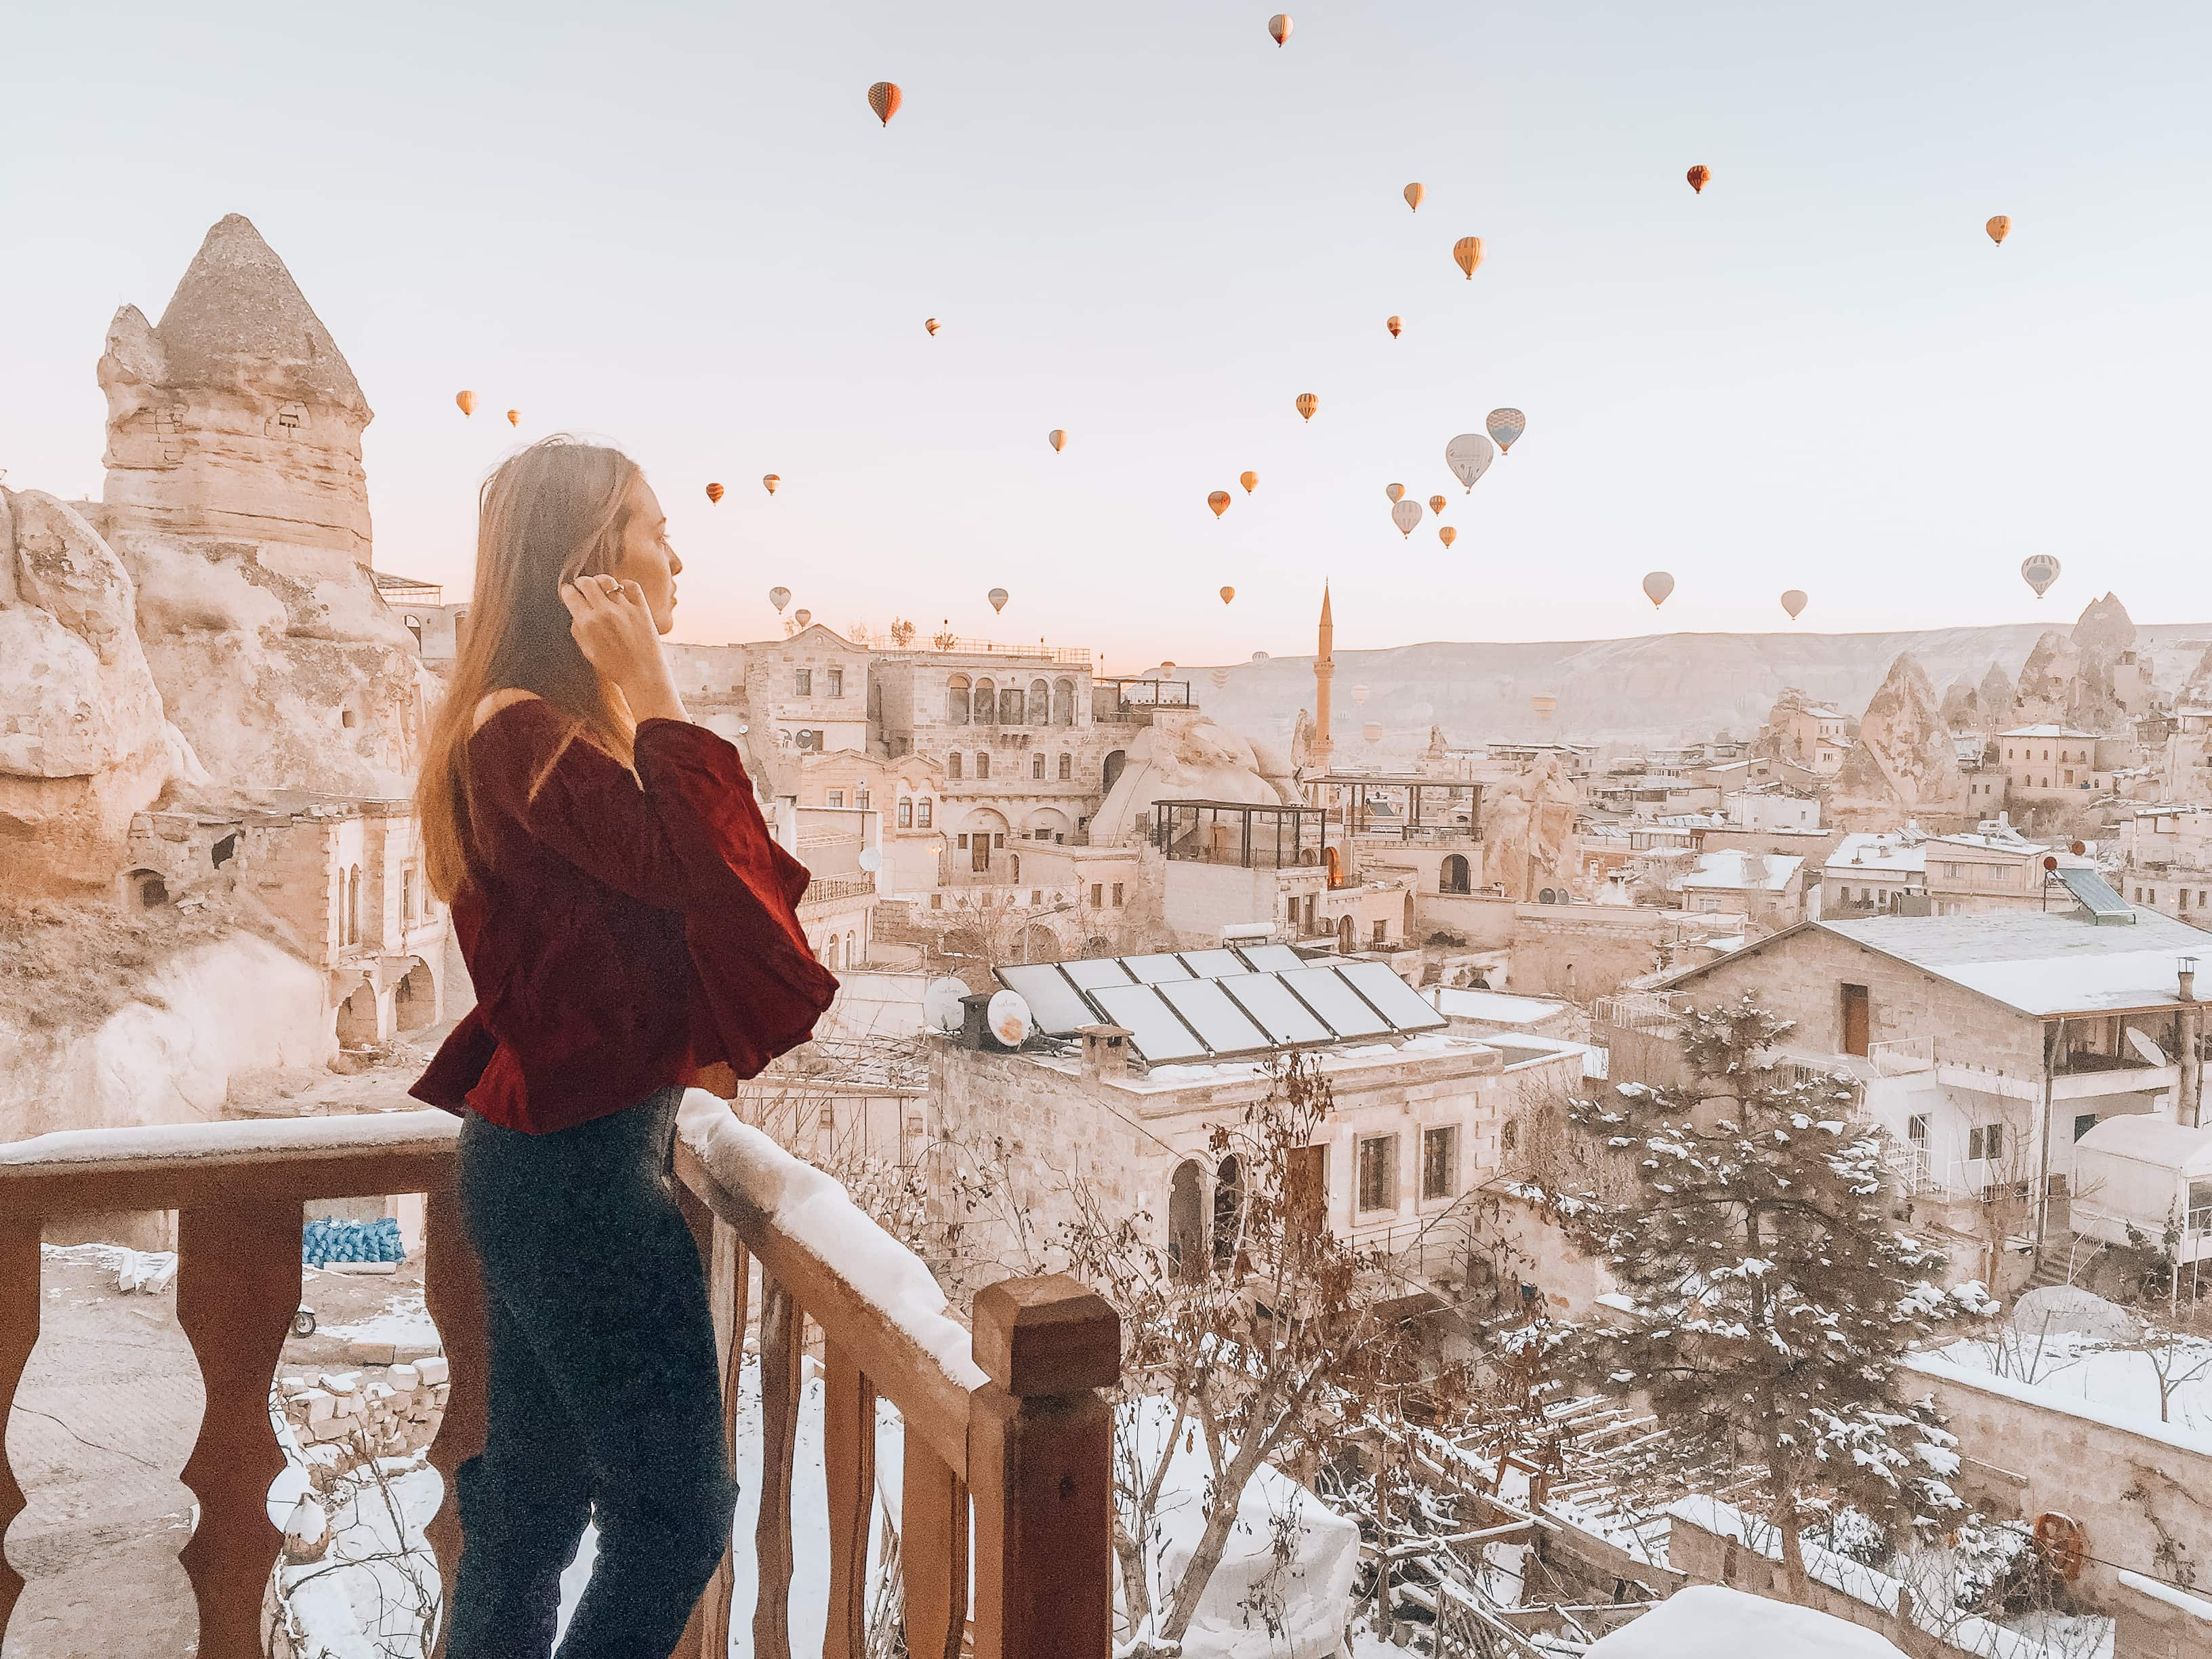 I went Hot Air Ballooning in Cappadocia during the off-season, here's how it went